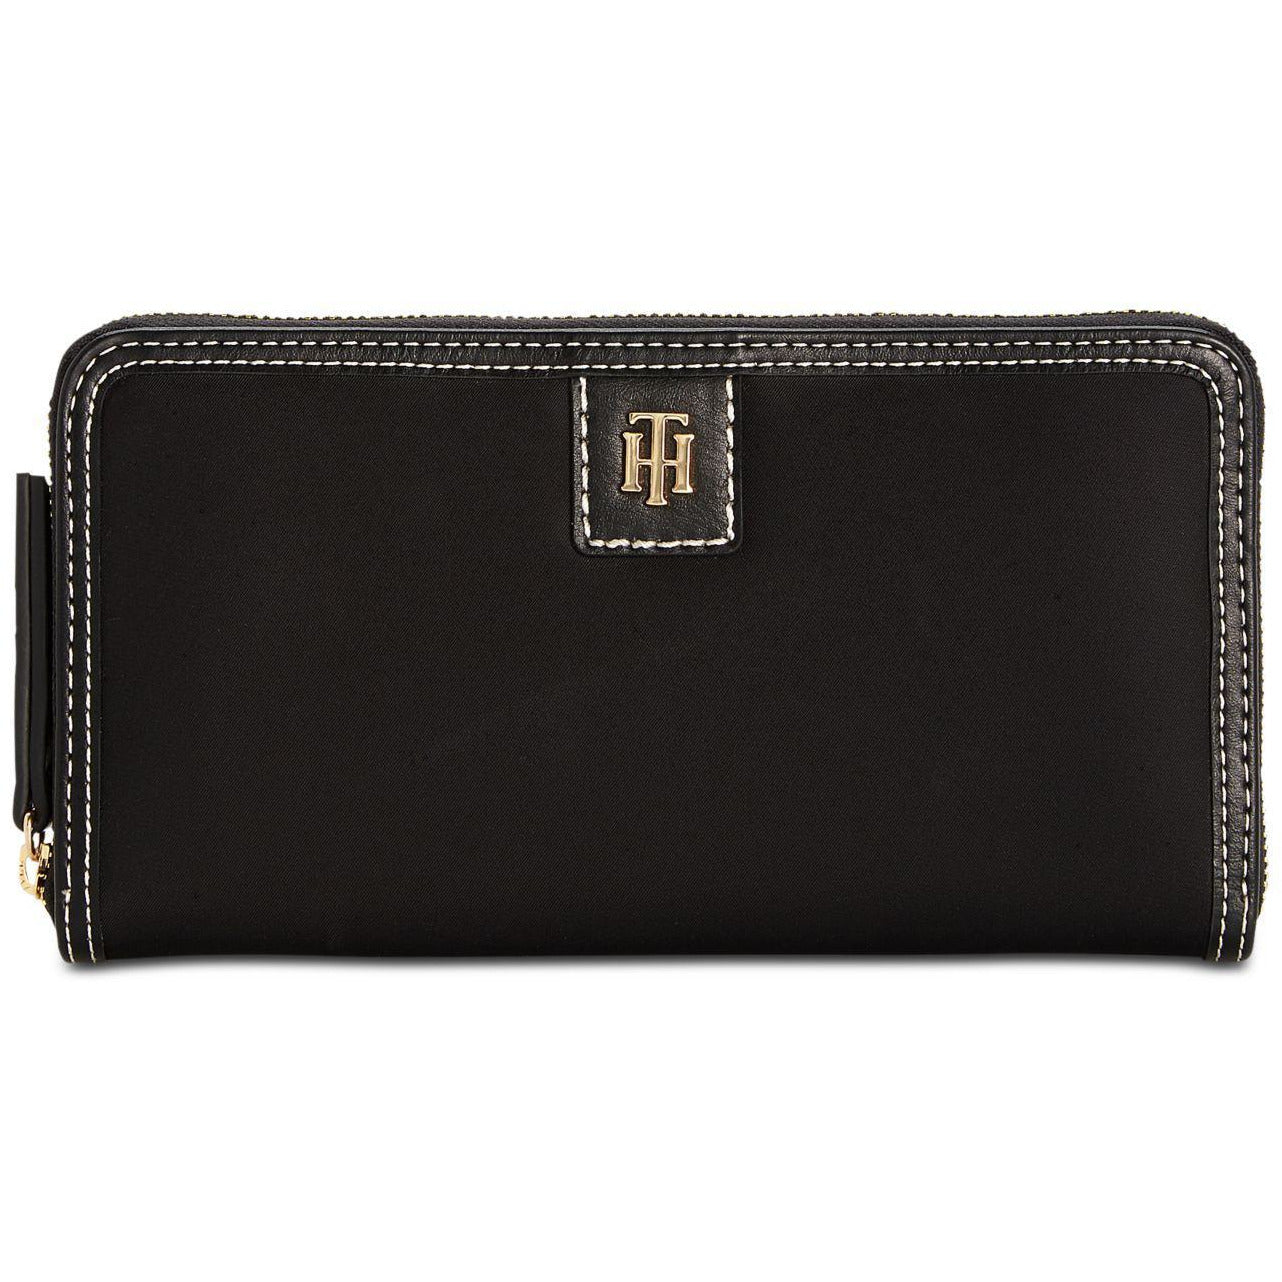 Tommy Hilfiger Julia Large Nylon Zip Black  Wallet for Women